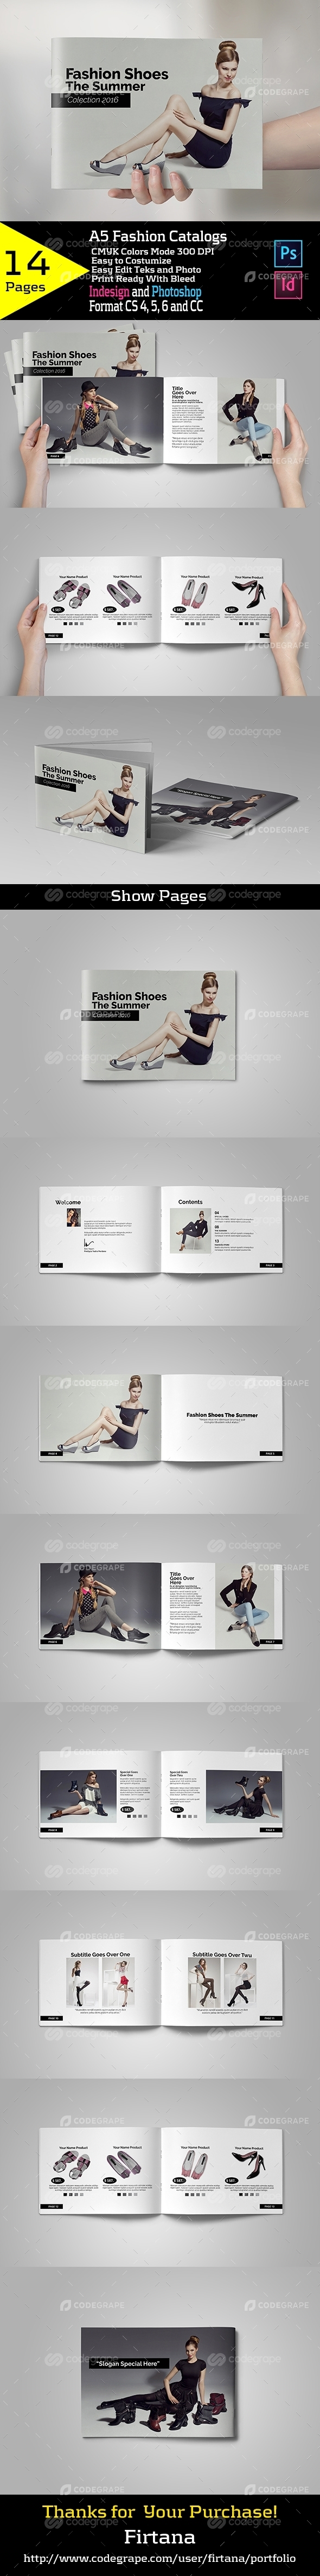 A5 Fashion Catalogs